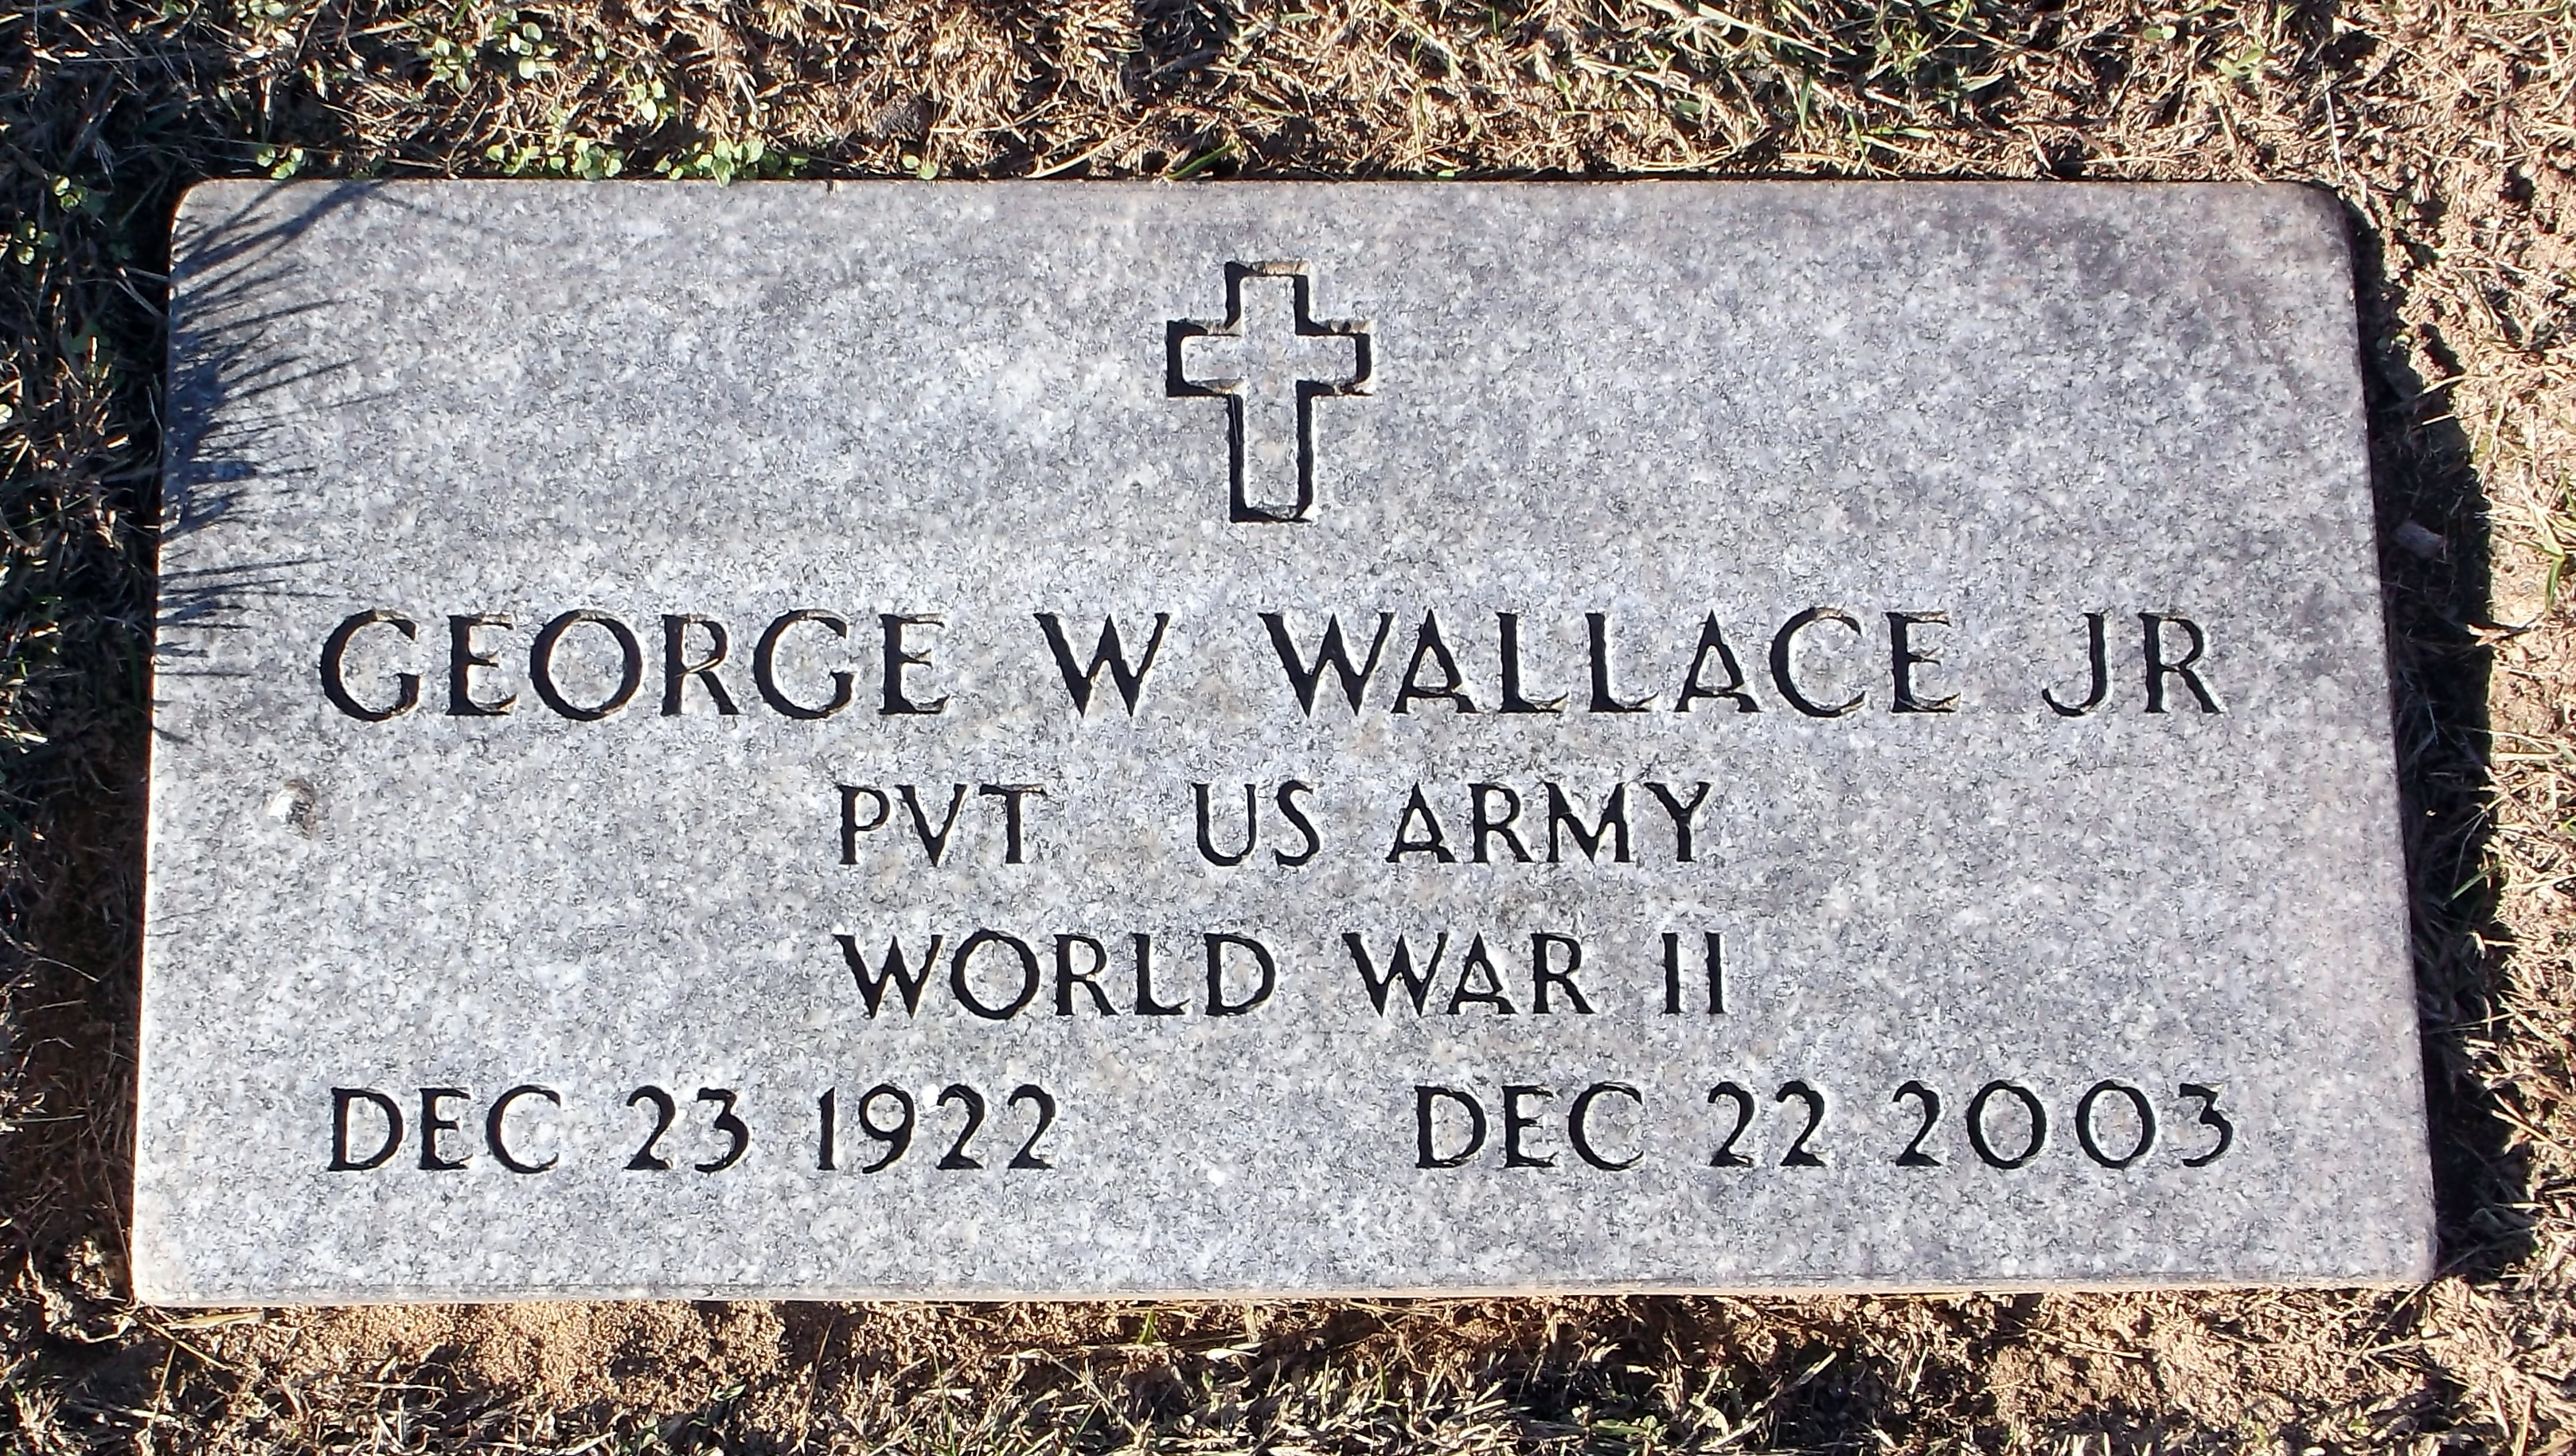 George W Wallace, Jr